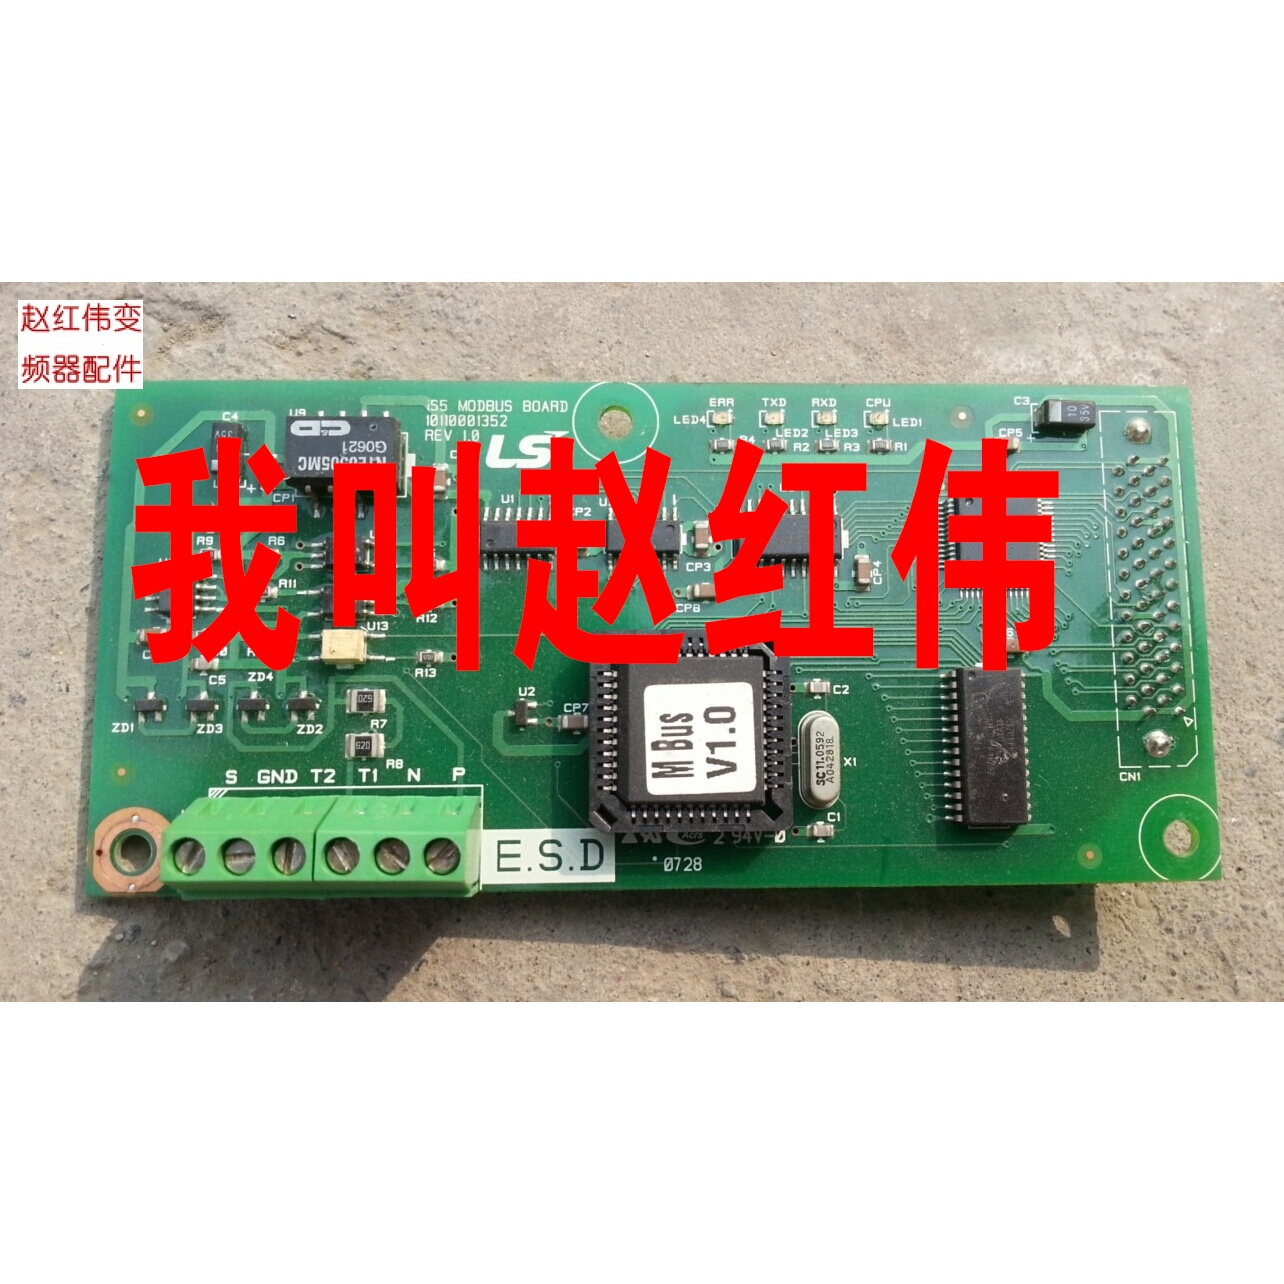 Non-new Second-hand LS Electric LG Inverter IS5 Series MODBUS B0ARD Communication Card Communication Card DP Card